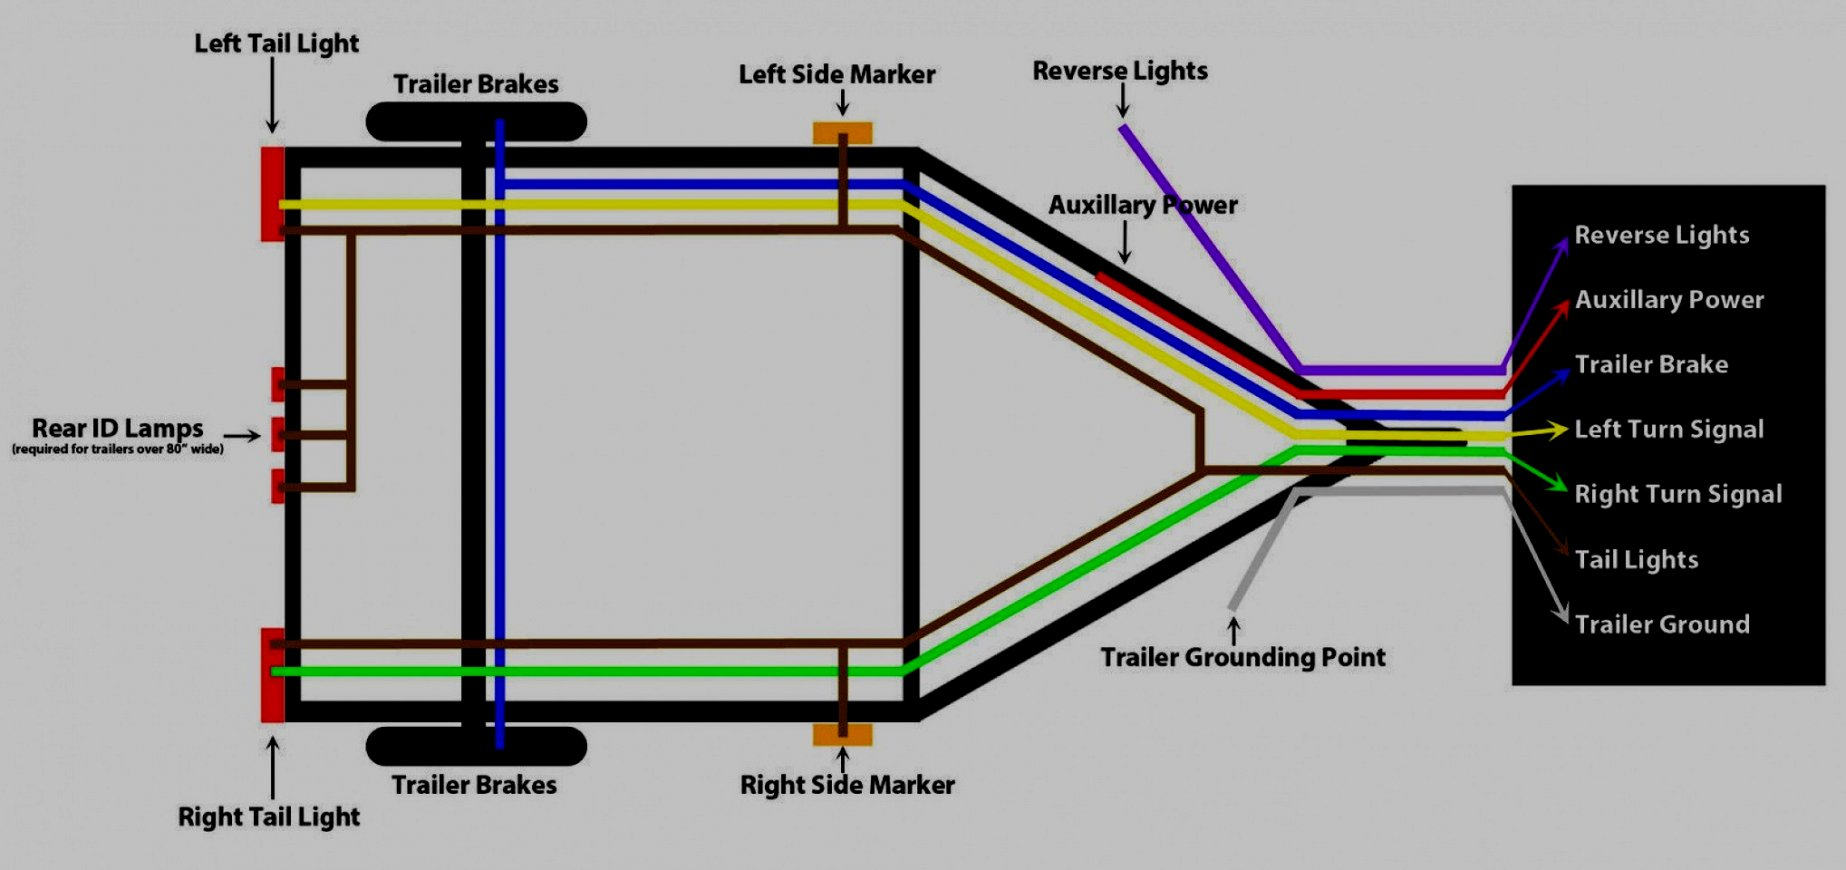 4 Wire Flat Trailer Wiring Diagram - Trusted Wiring Diagram Online - 5 Wire Flat Trailer Wiring Diagram